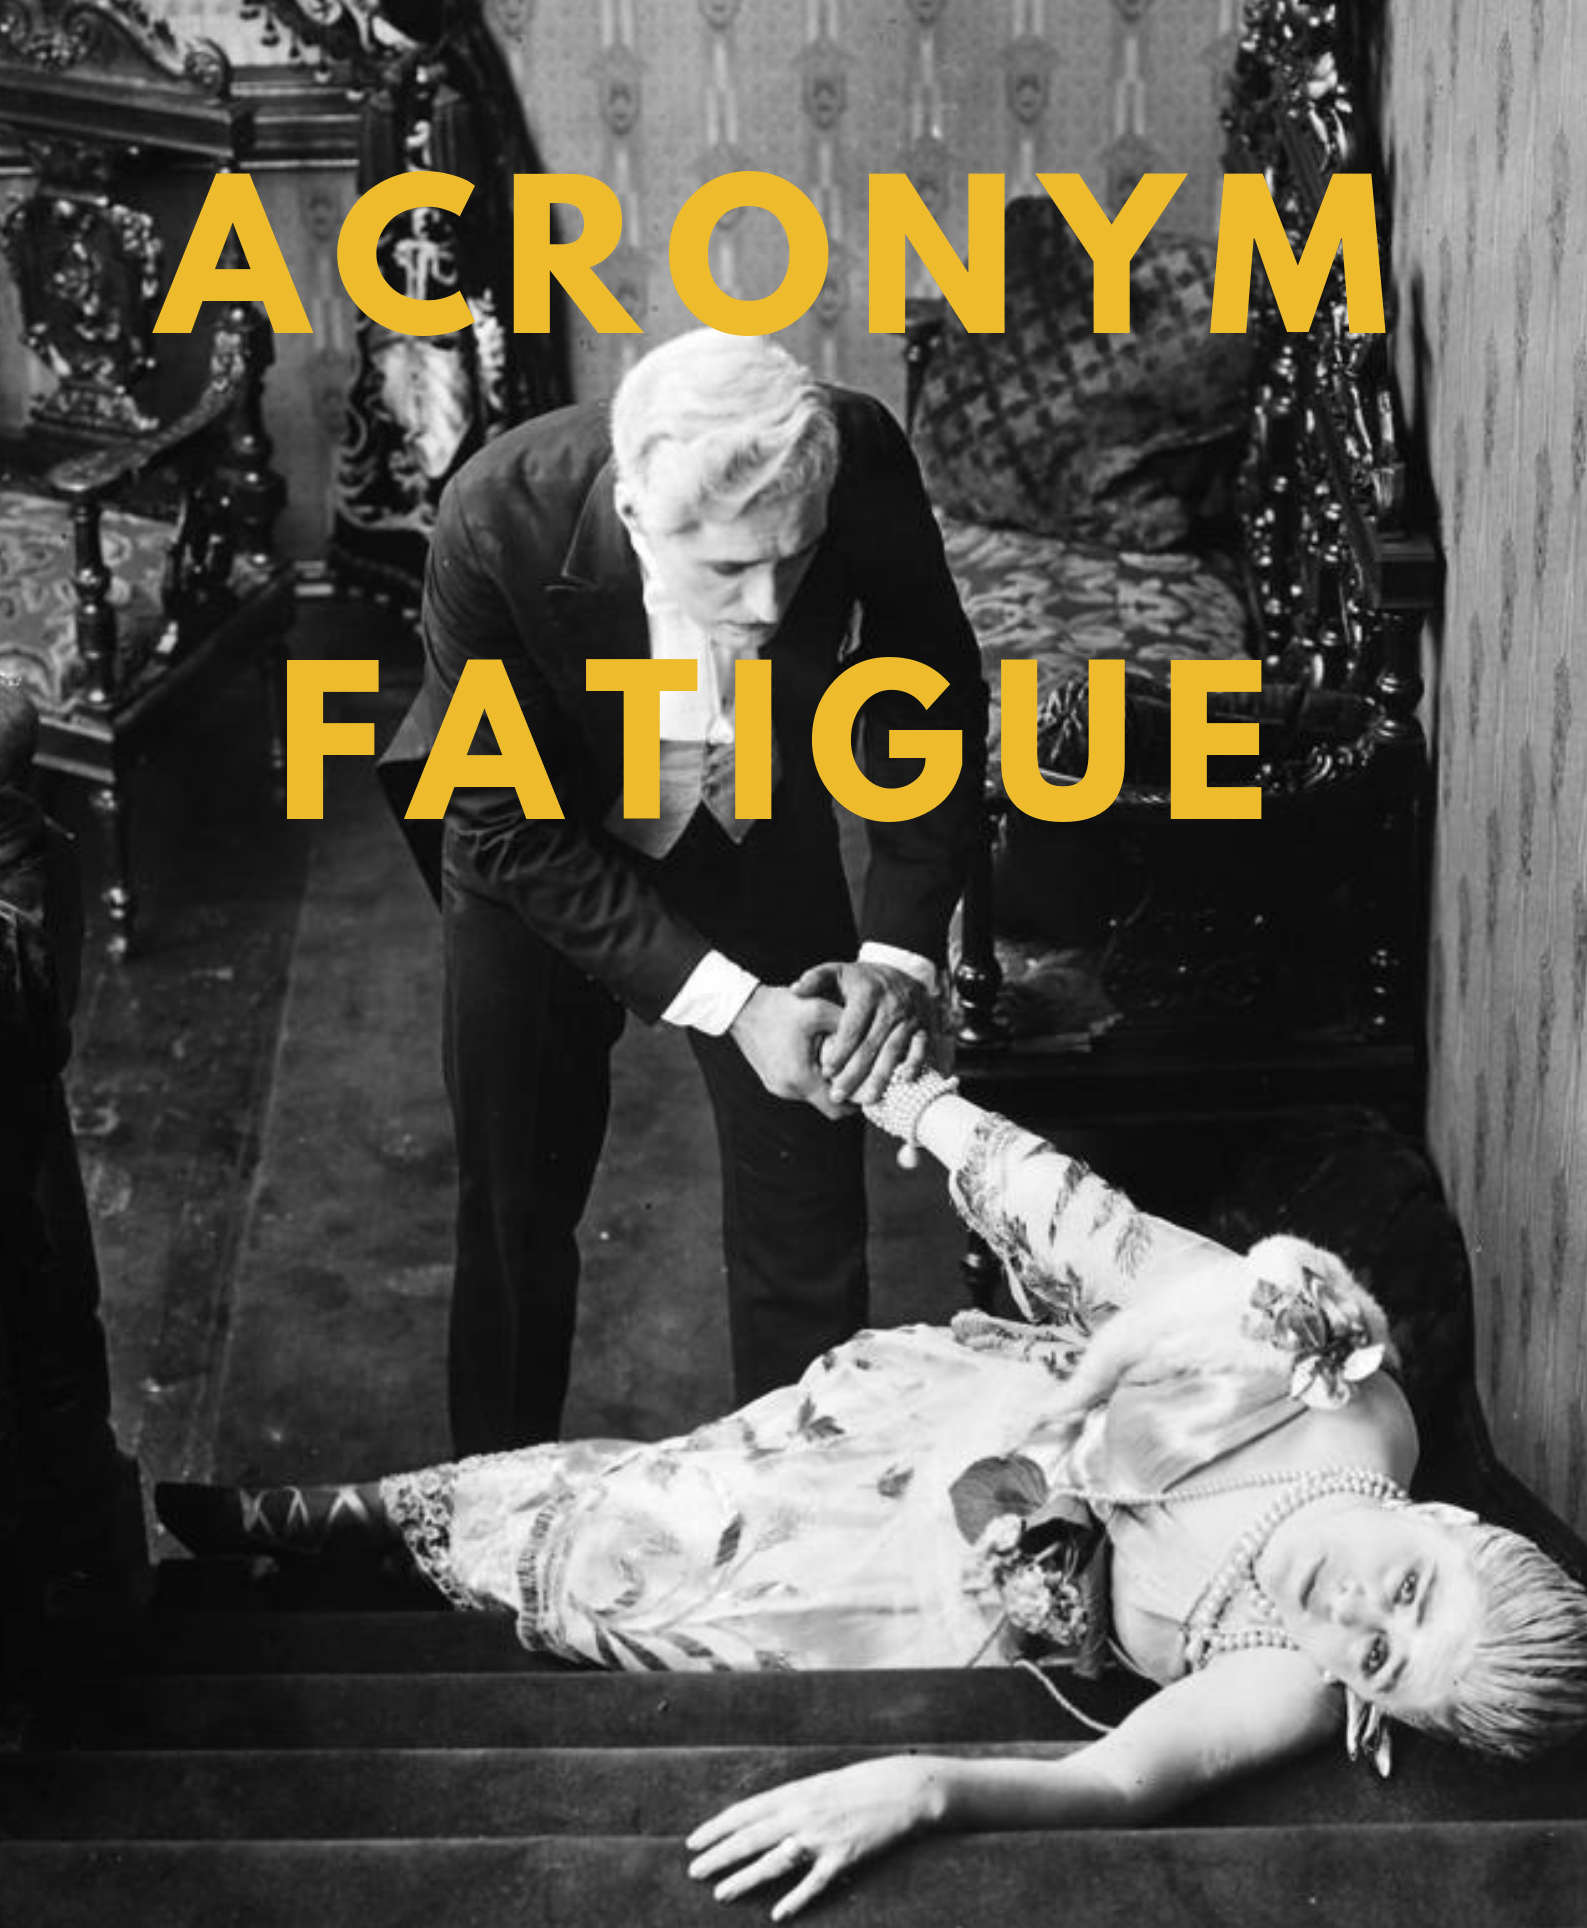 "Old Hollywood movie picture of a woman fainting on stairs, a man is holding her outstretched hand. Over the image it says in large yellow letter: ""acronym fatigue""."